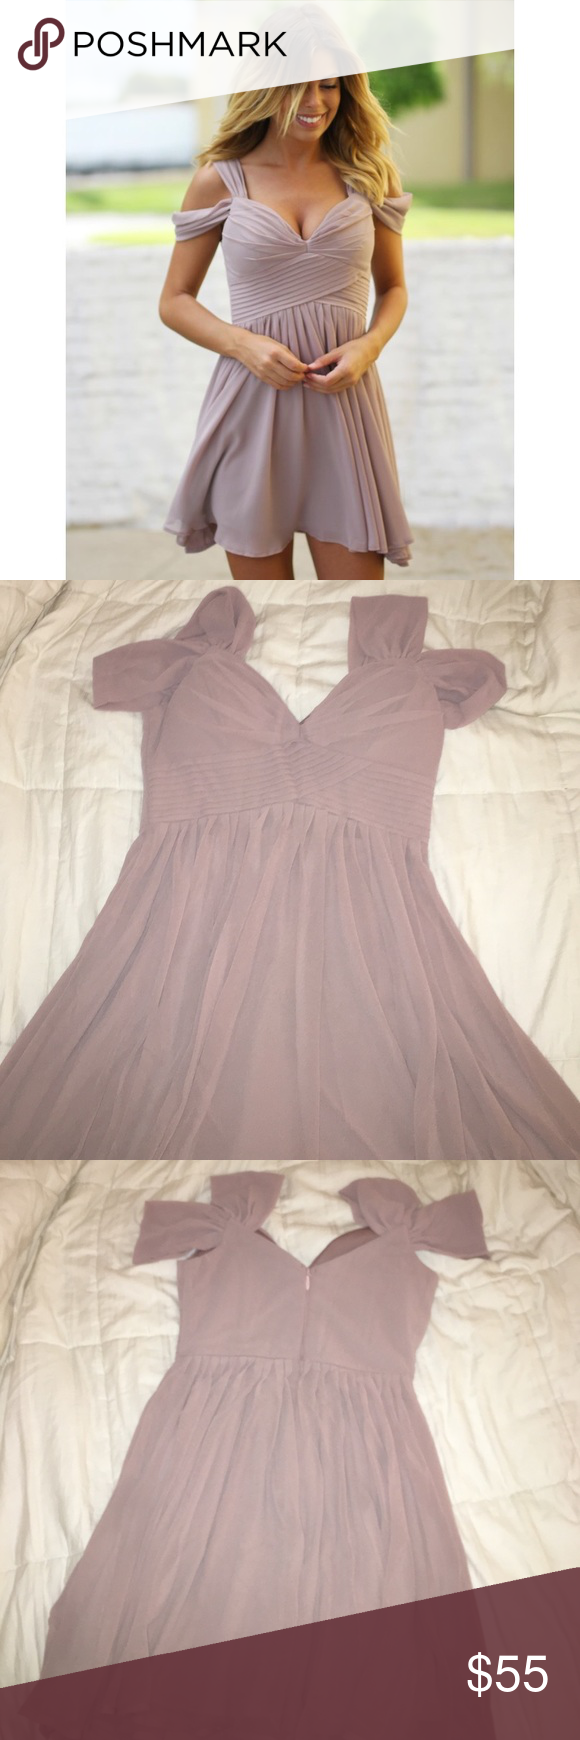 "REDUCED $ - NEW ""Saved by the Dress"" beige dress Beautiful dress! Size medium. Never worn. I bought it online final sale, and it was too small on me :( Dresses Mini"